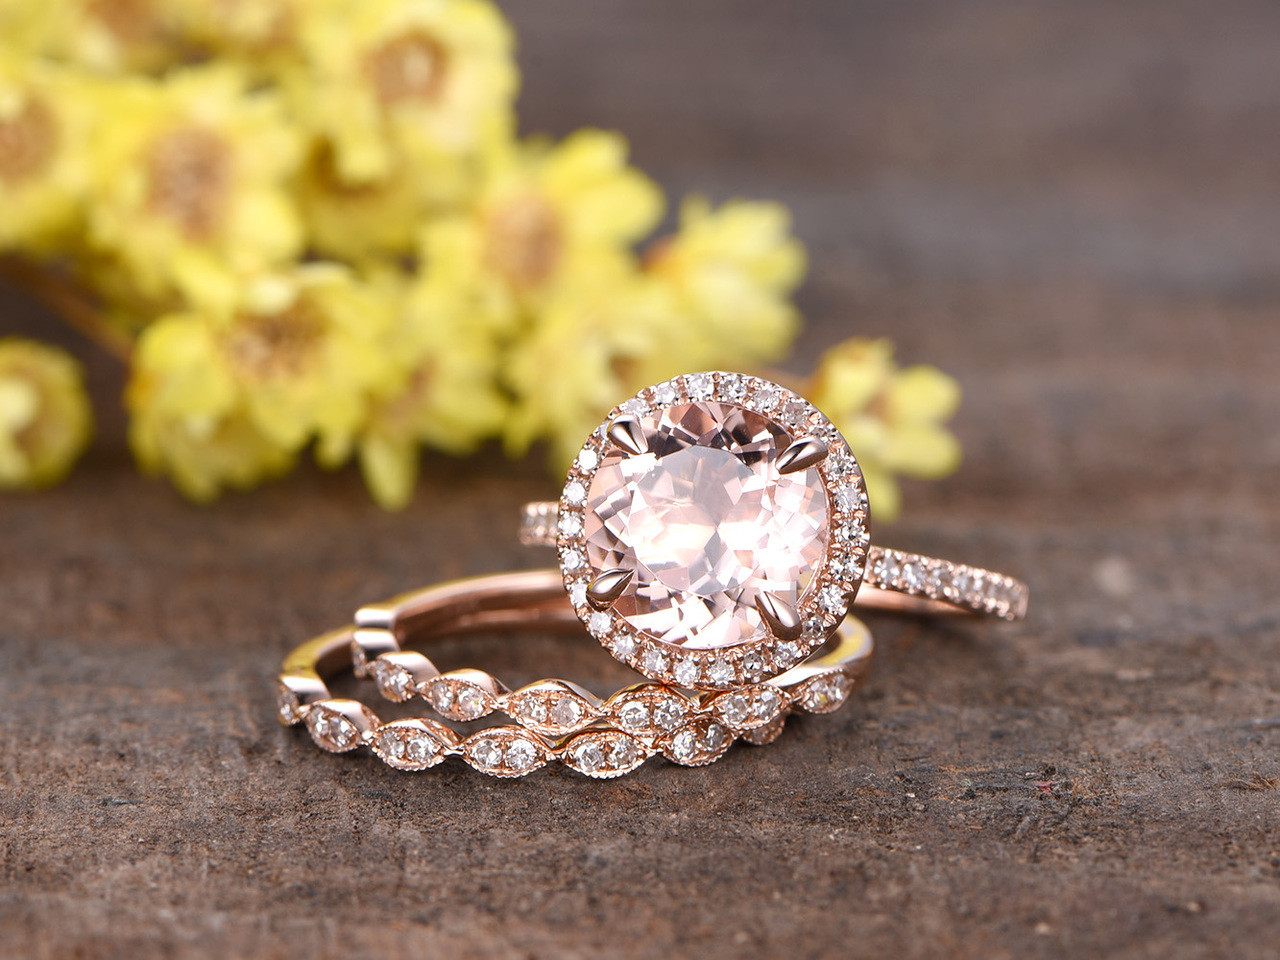 23 Carat Round Morganite Bridal Set 14k Rose Gold Diamond